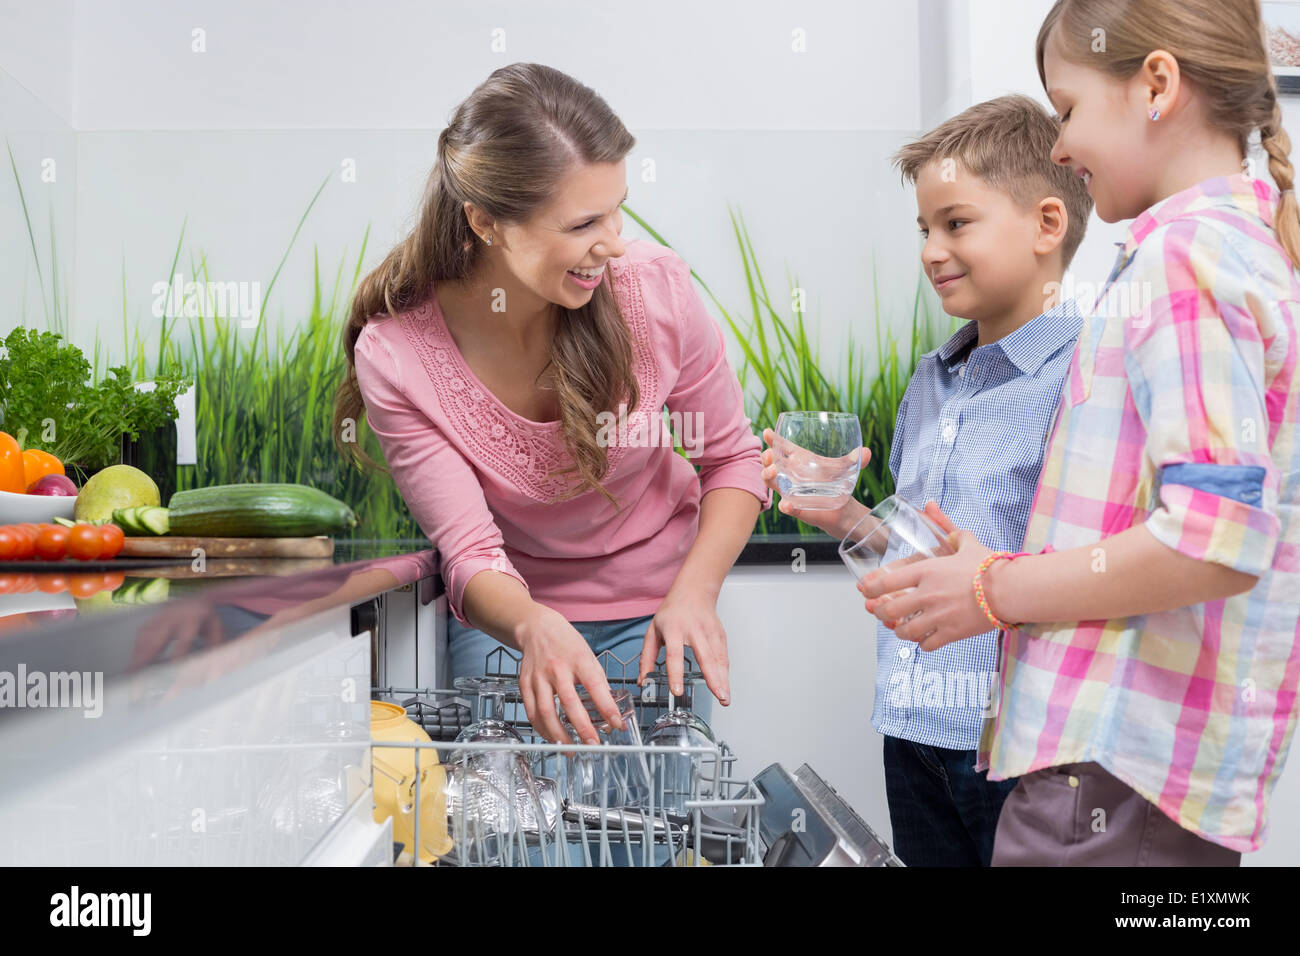 Happy mother and children placing glasses in dishwasher - Stock Image